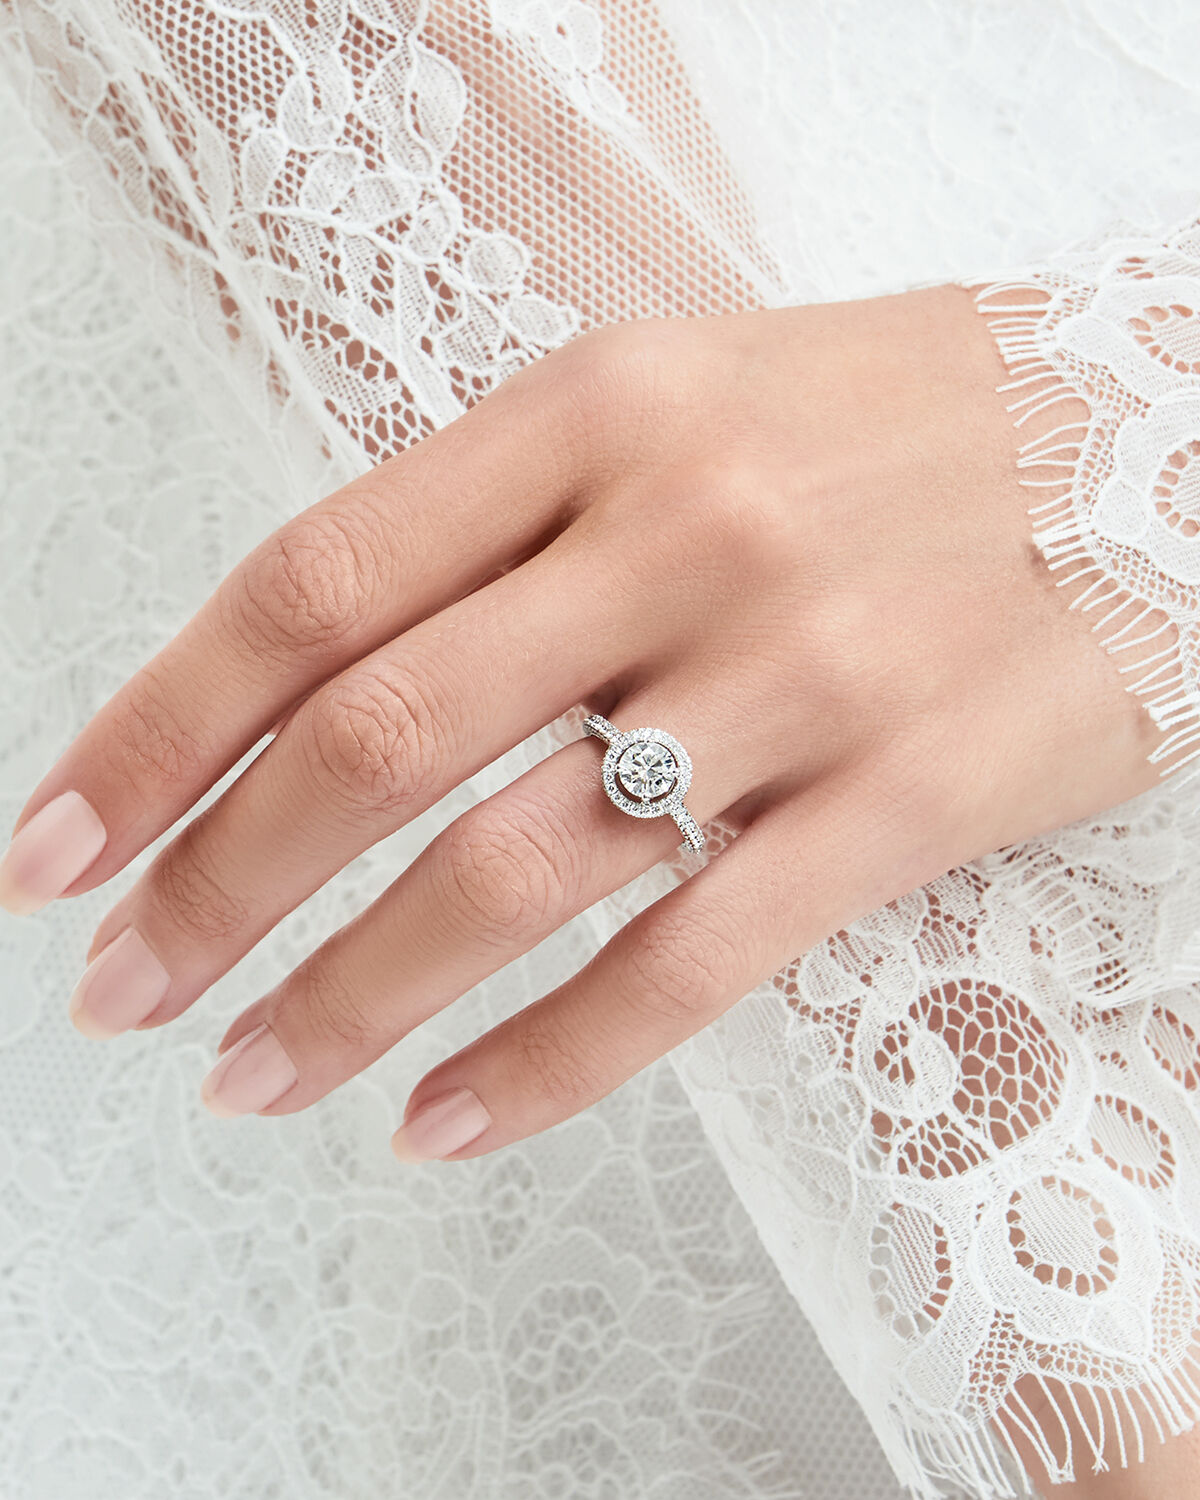 Close up of a model wearing a Graff Constellation engagement ring